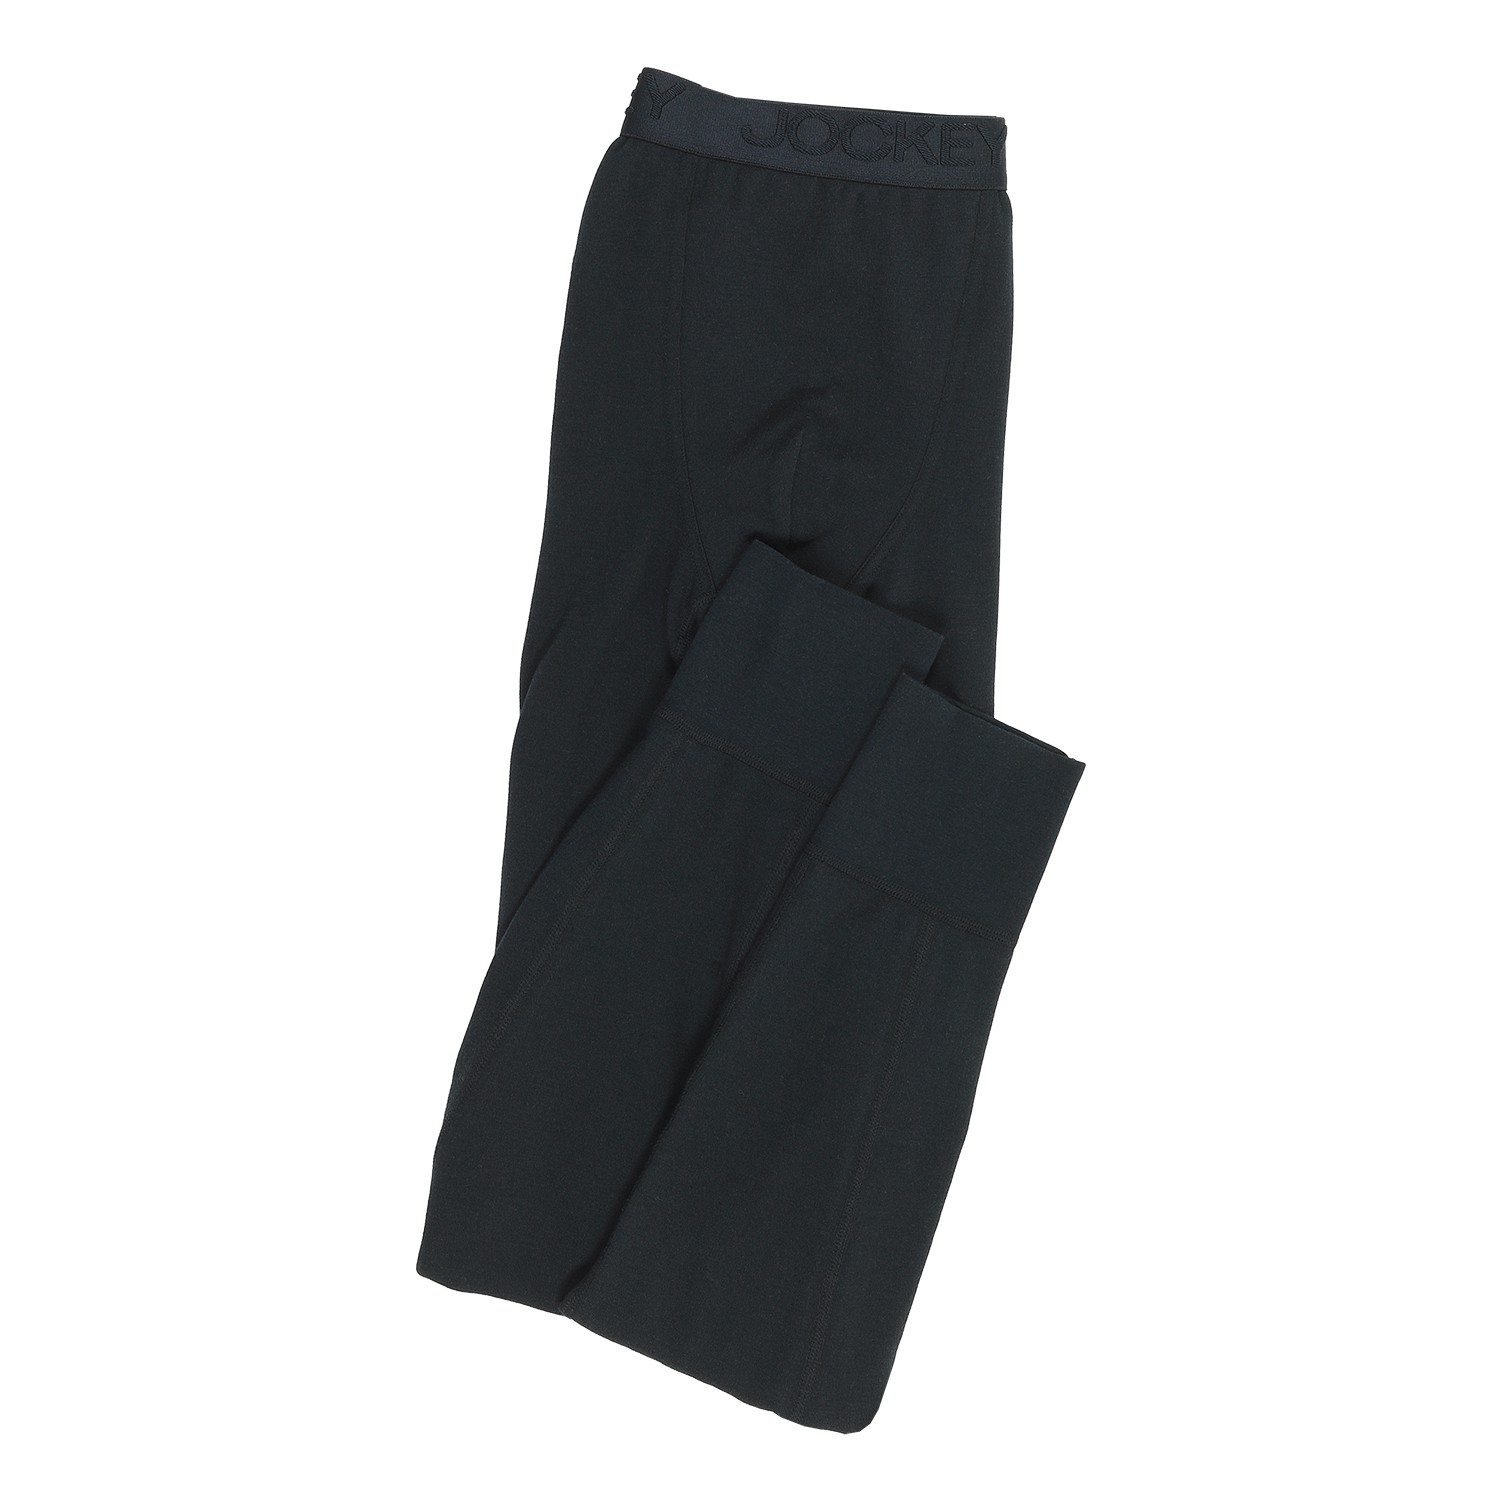 Detail Image to Long underwear from Jockey in black up to size 6XL